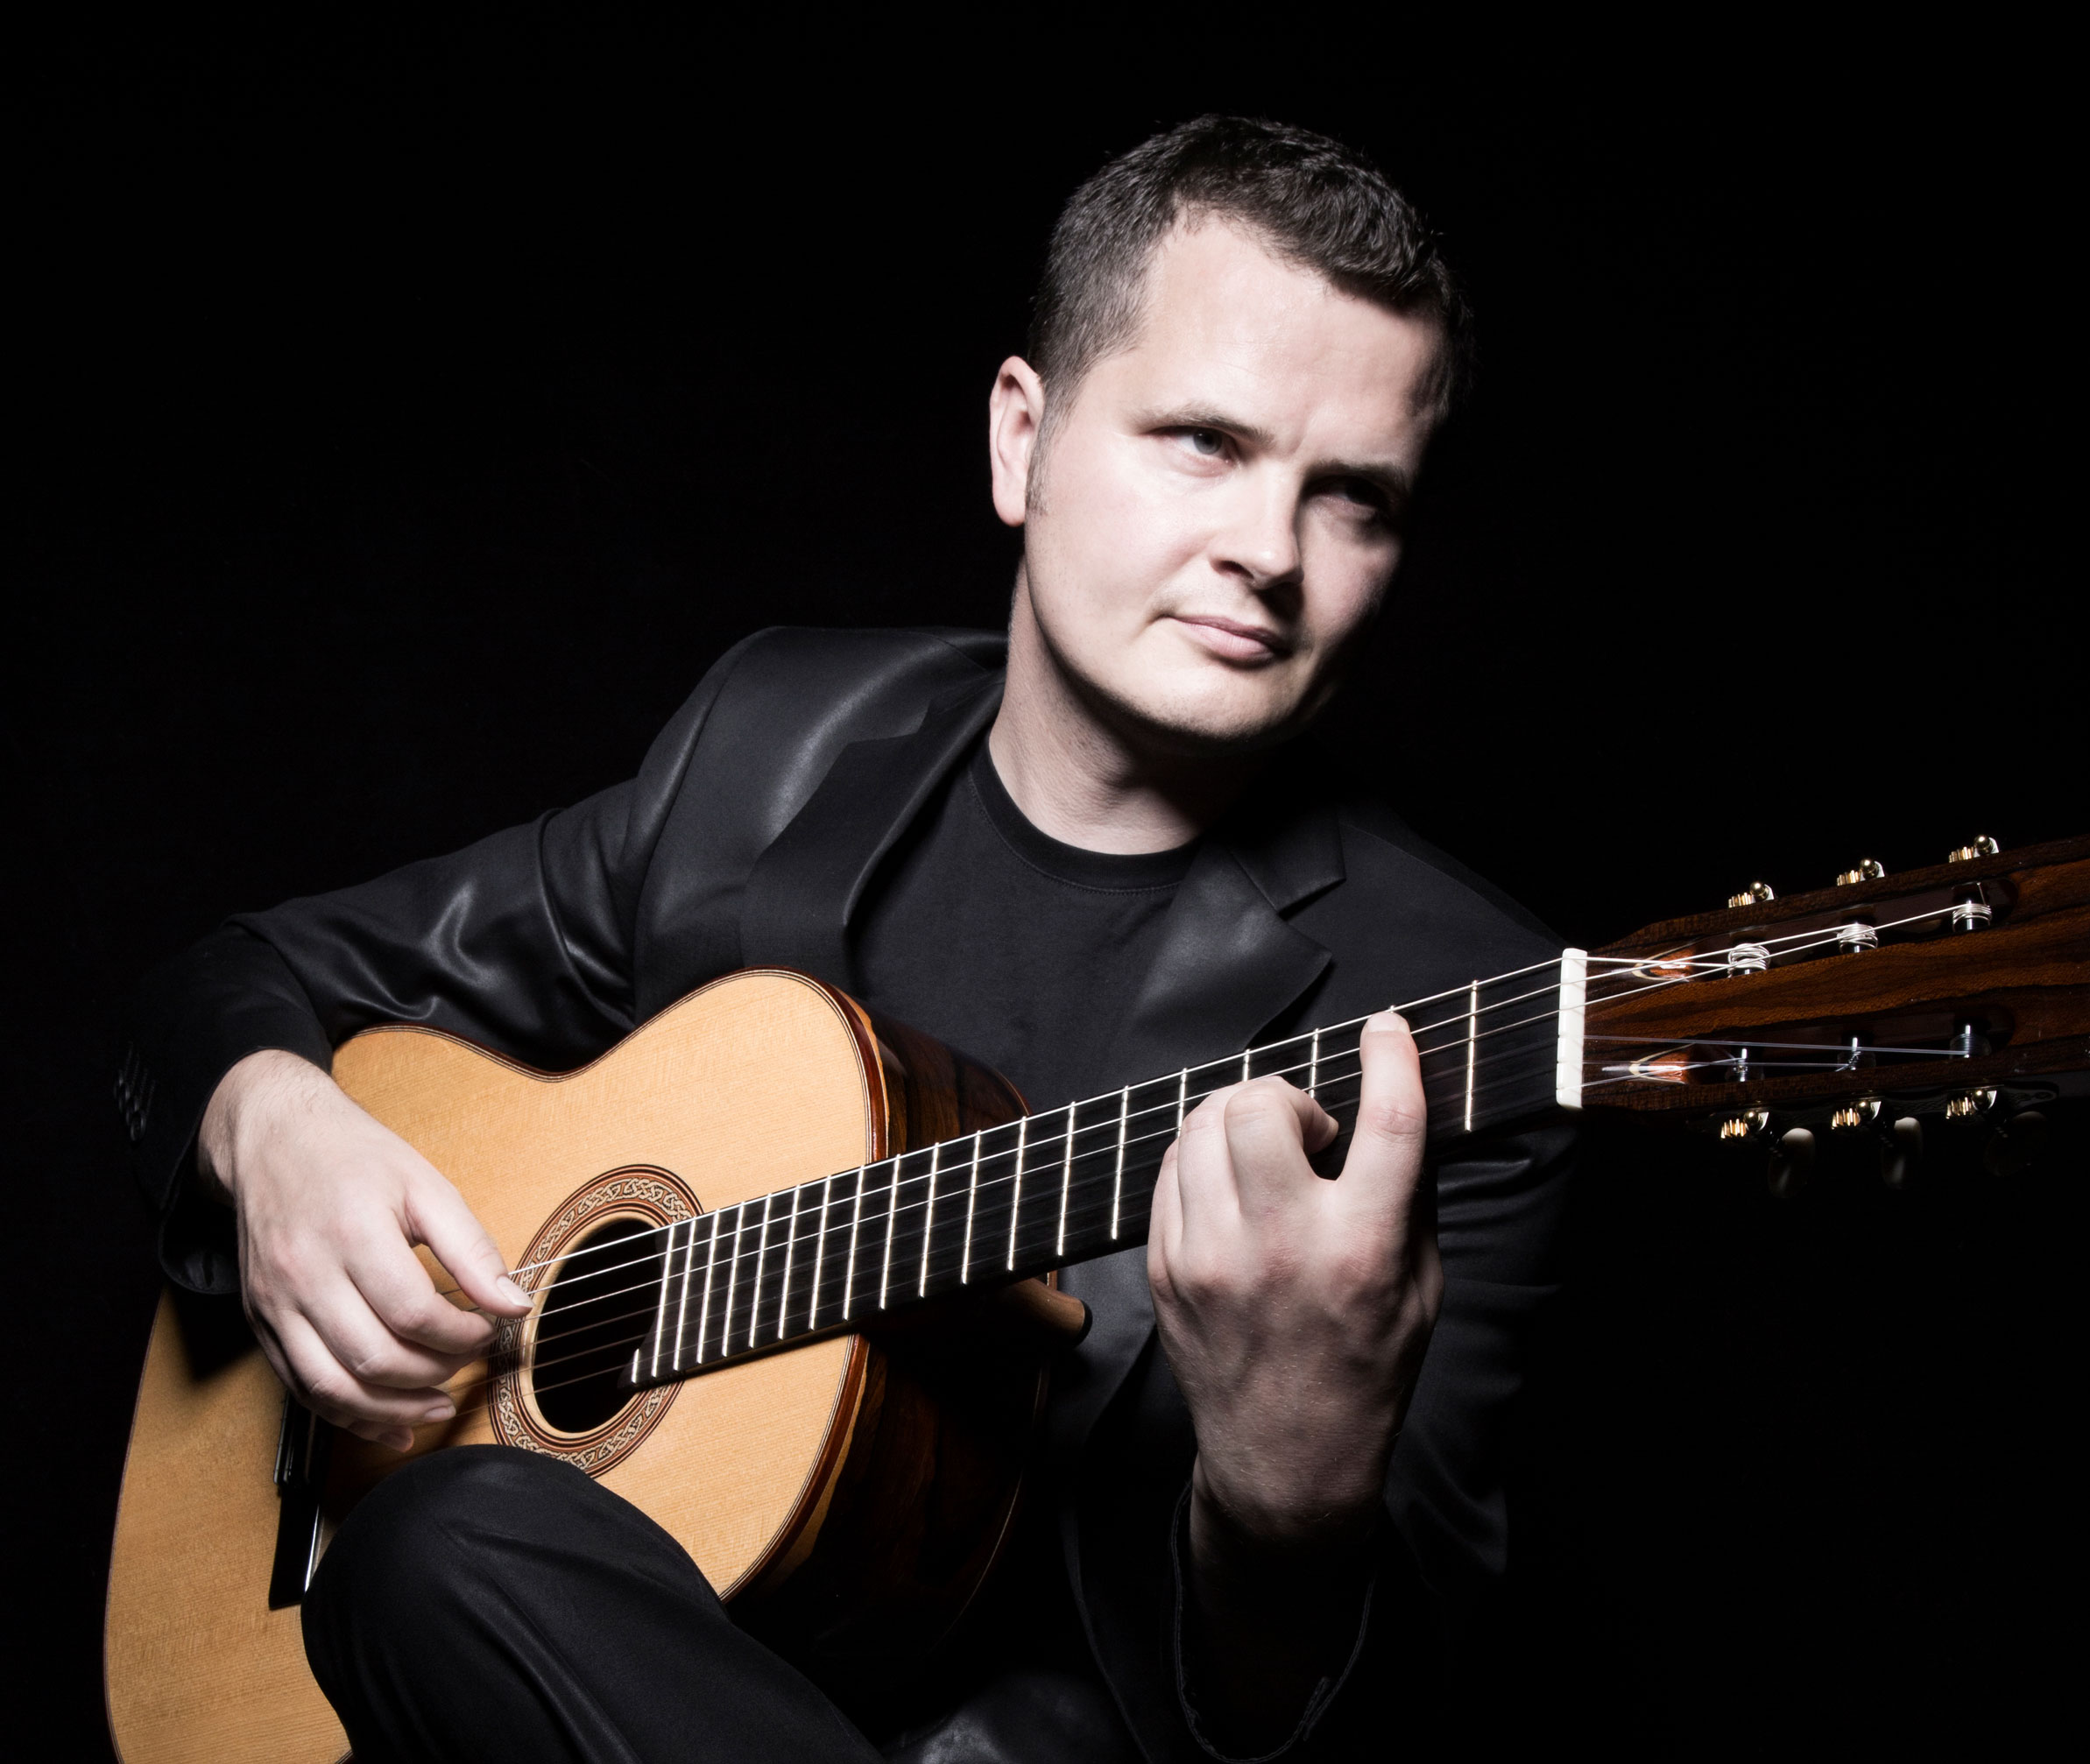 Alec O'Leary classical guitar player